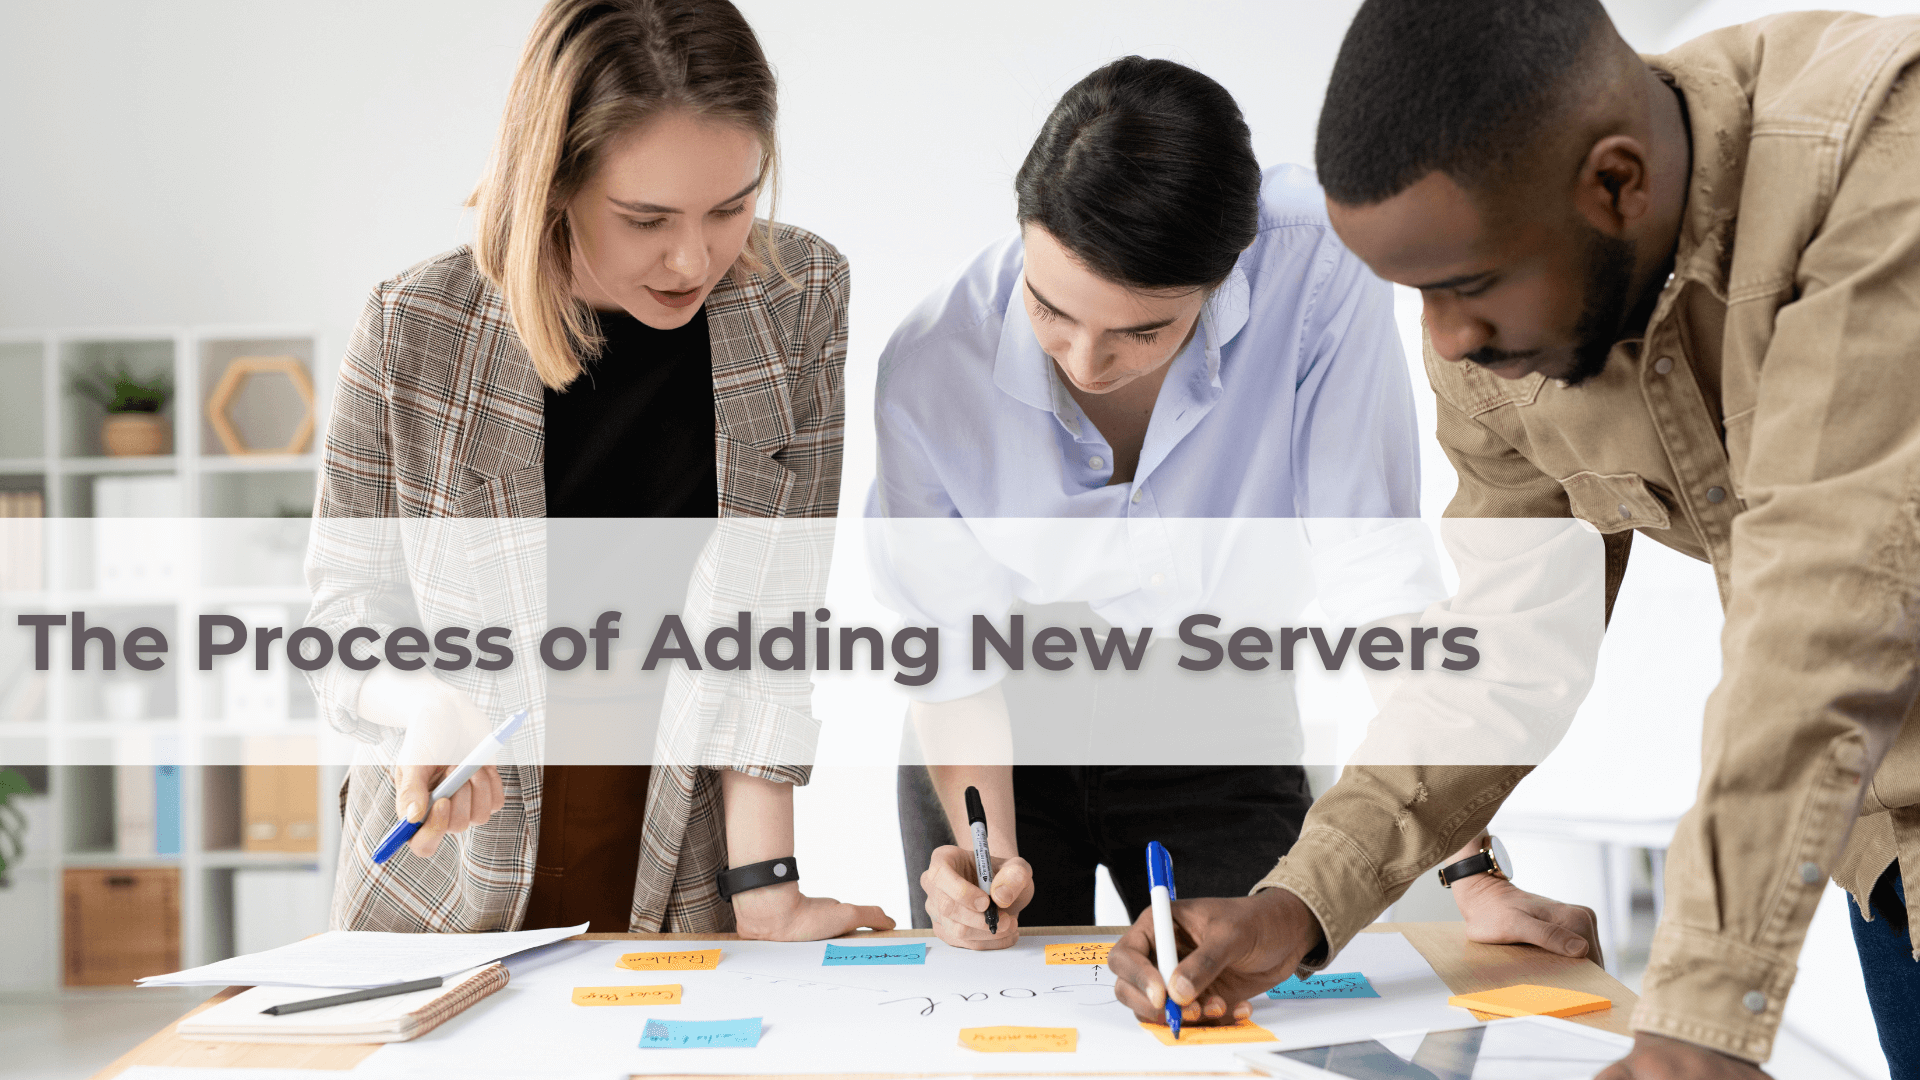 The Process of Adding New Servers